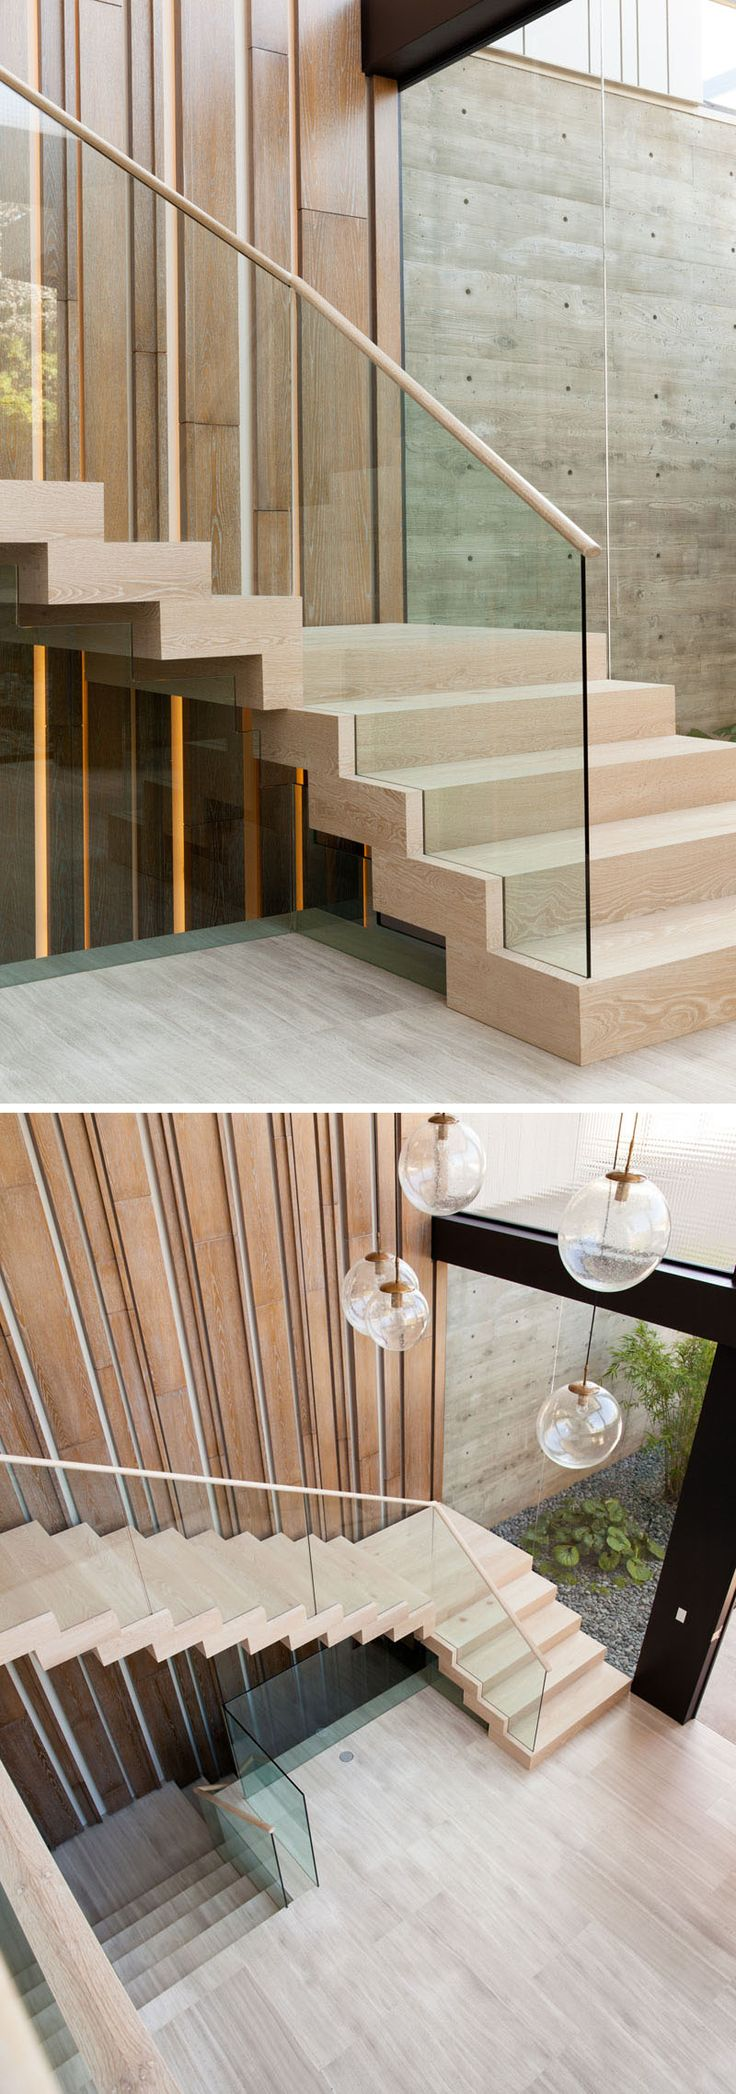 In this modern house, light wood stairs lead up to the second floor of the home., and a vertical wood accent wall with hidden lighting helps to emphasize the height of the foyer.